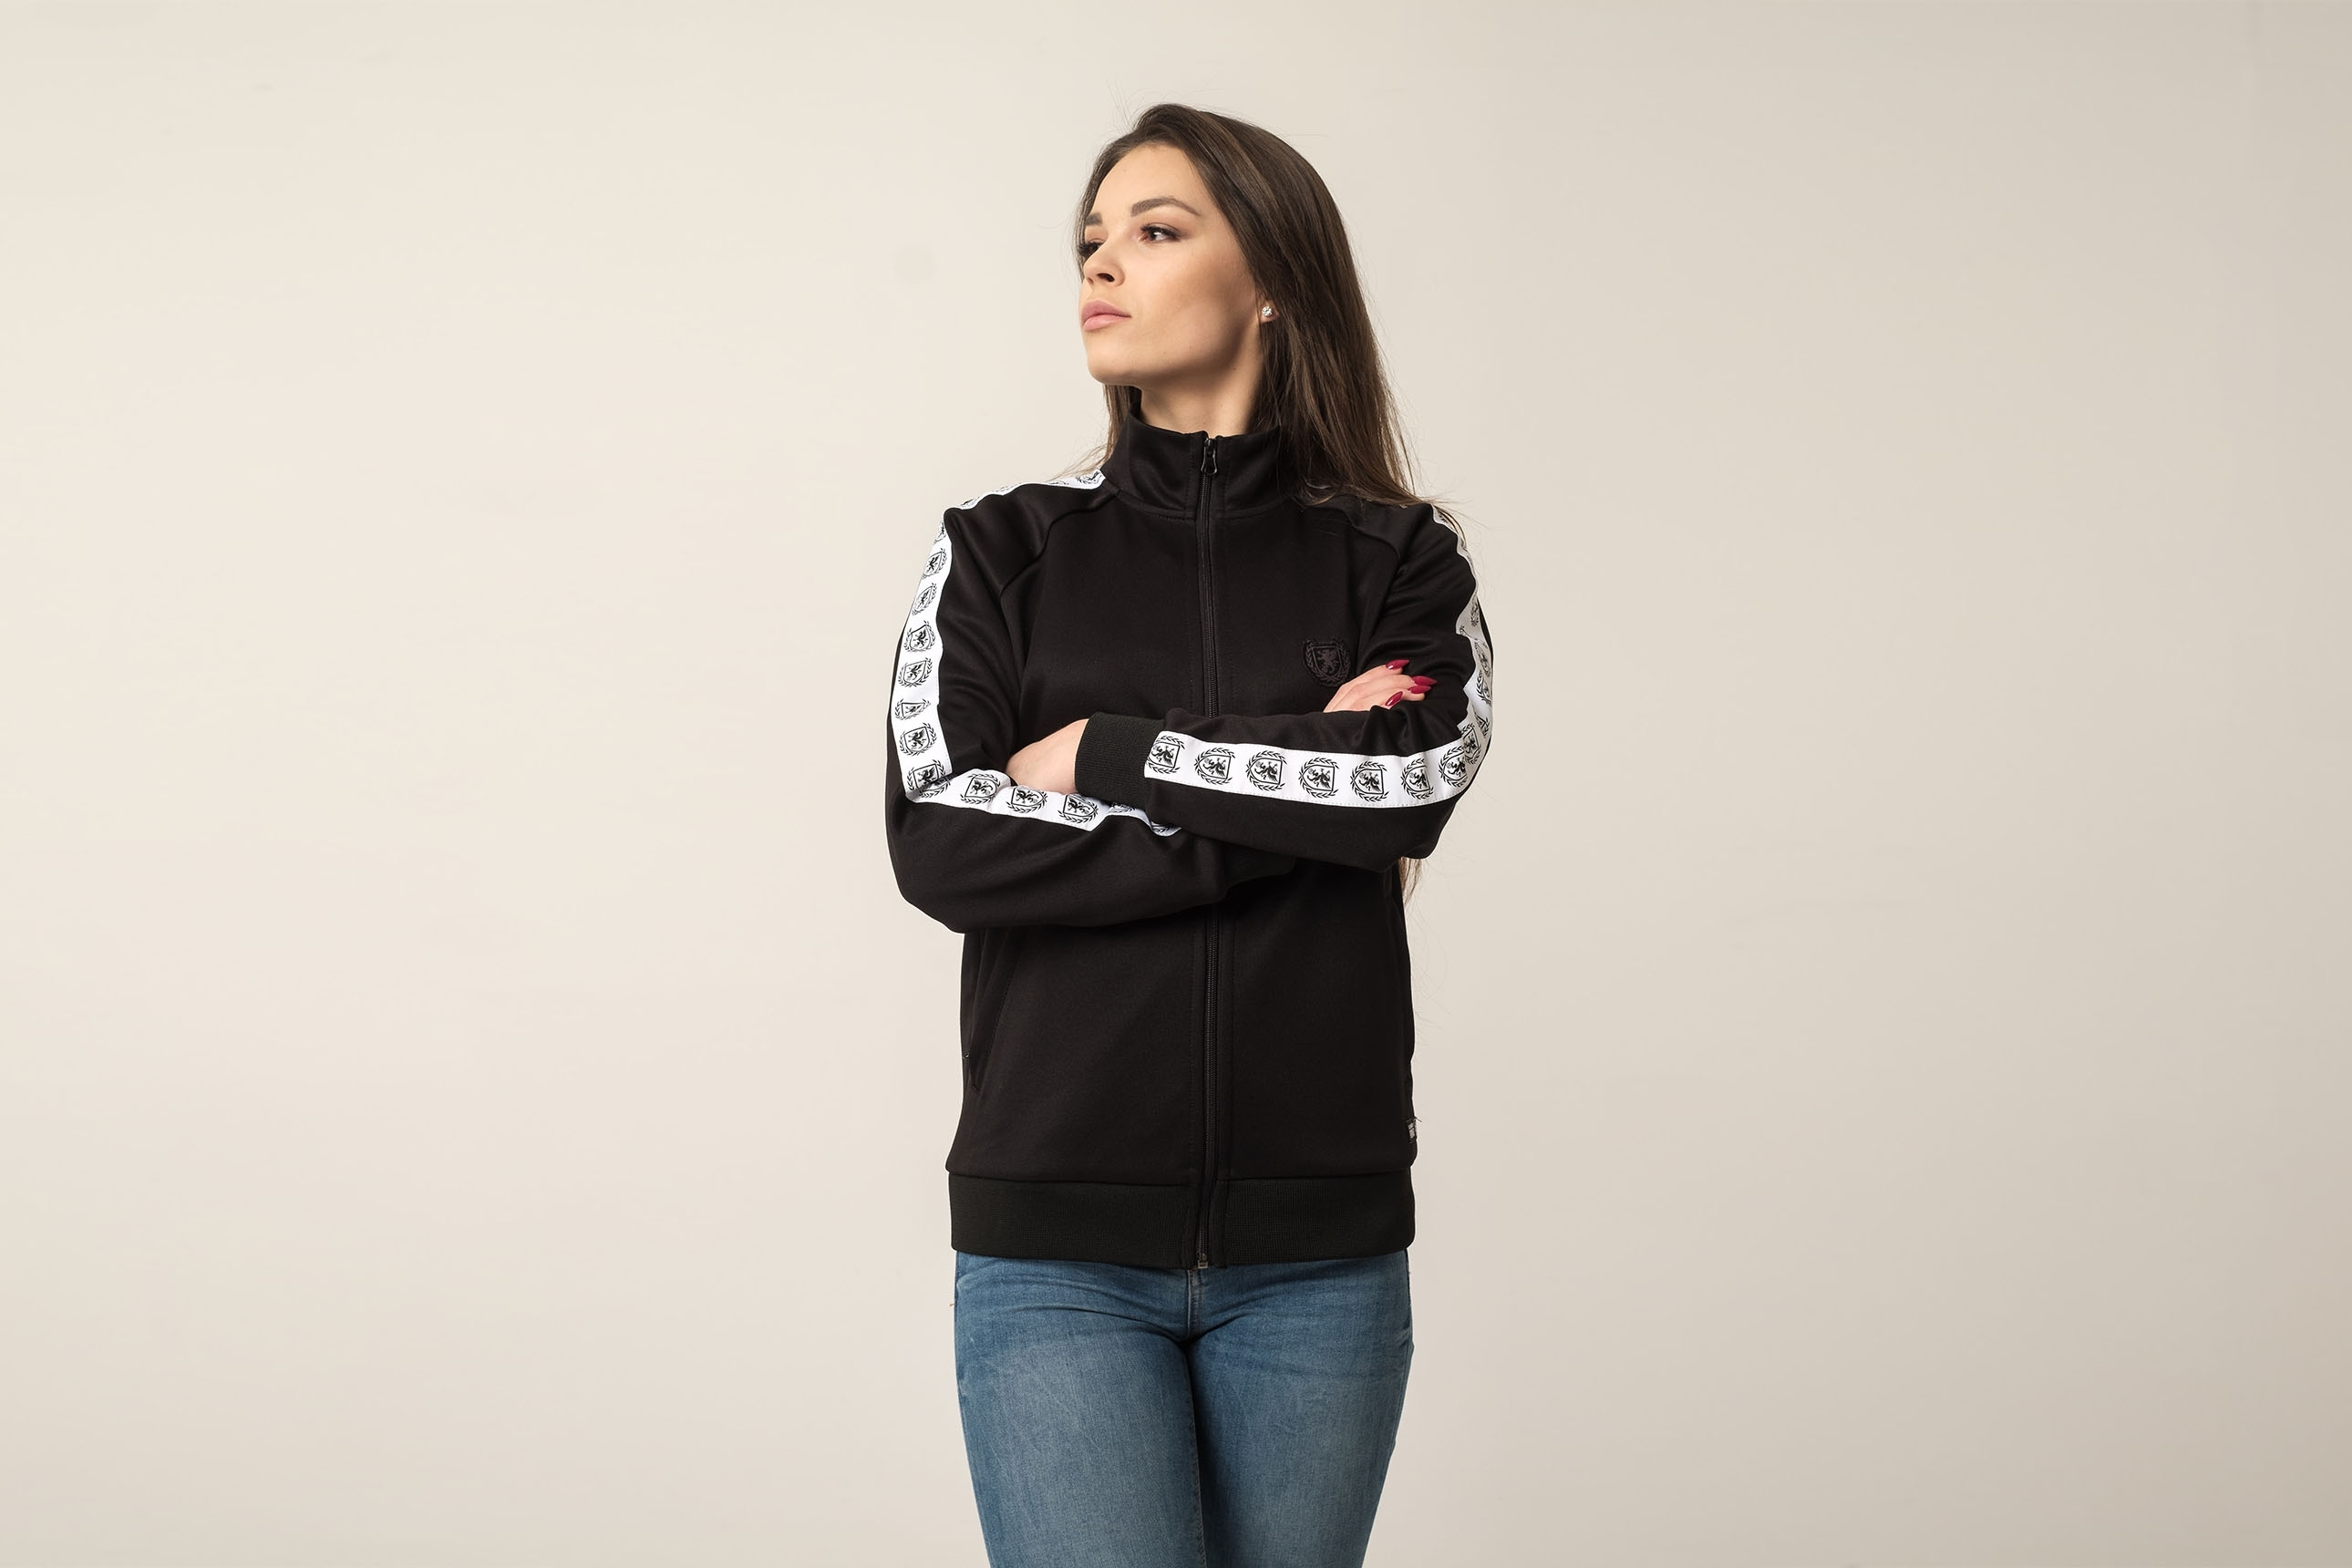 Damen Trainingsjacke Retro Supreme Black